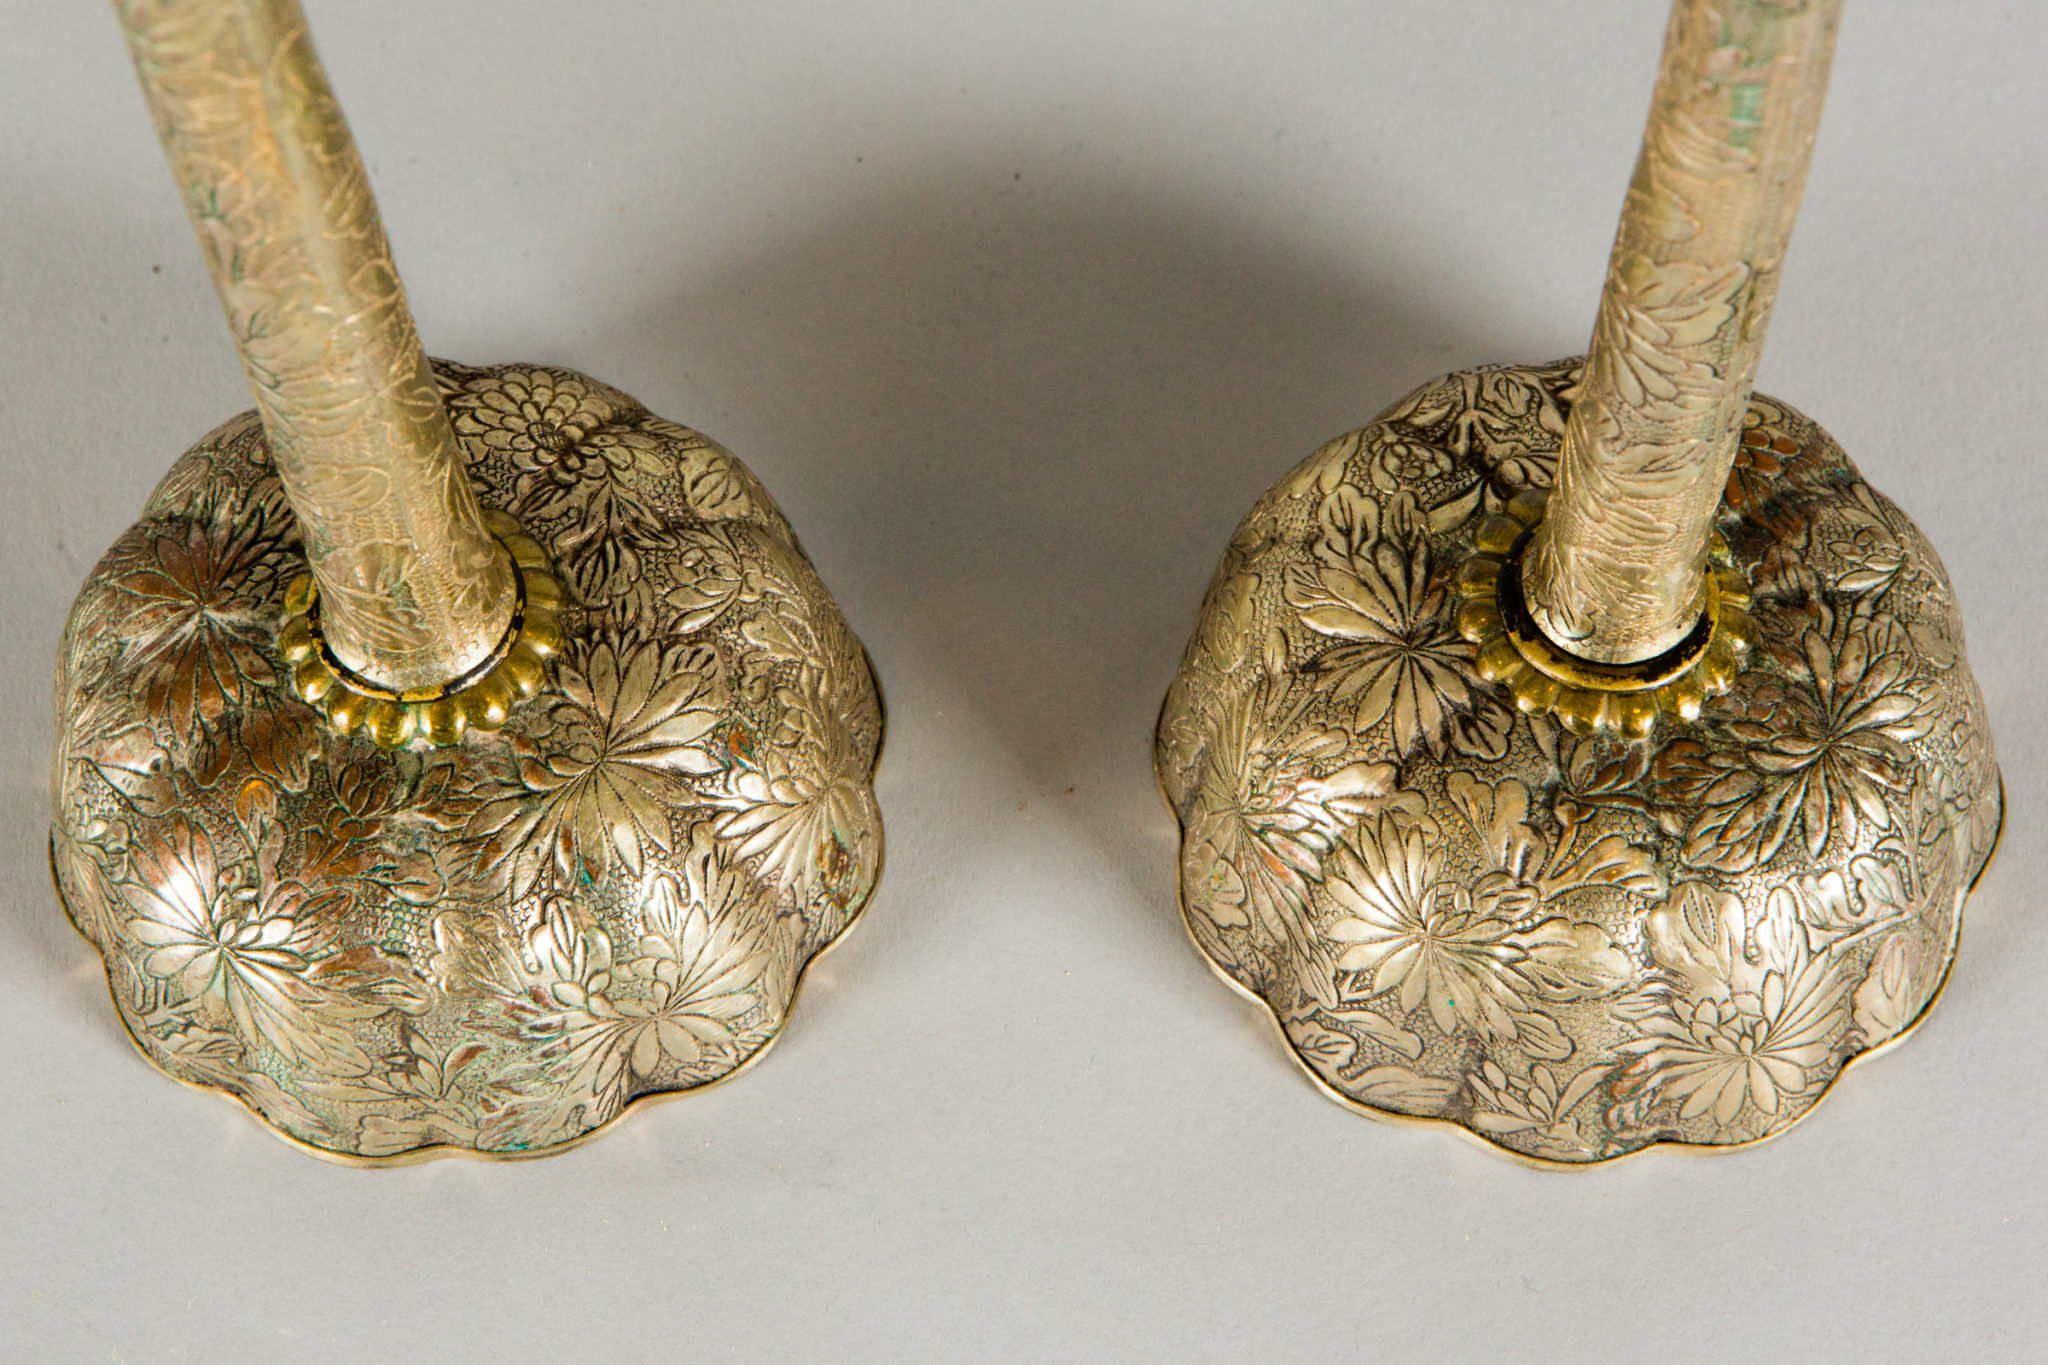 Pair of Antique Japanese Candlesticks